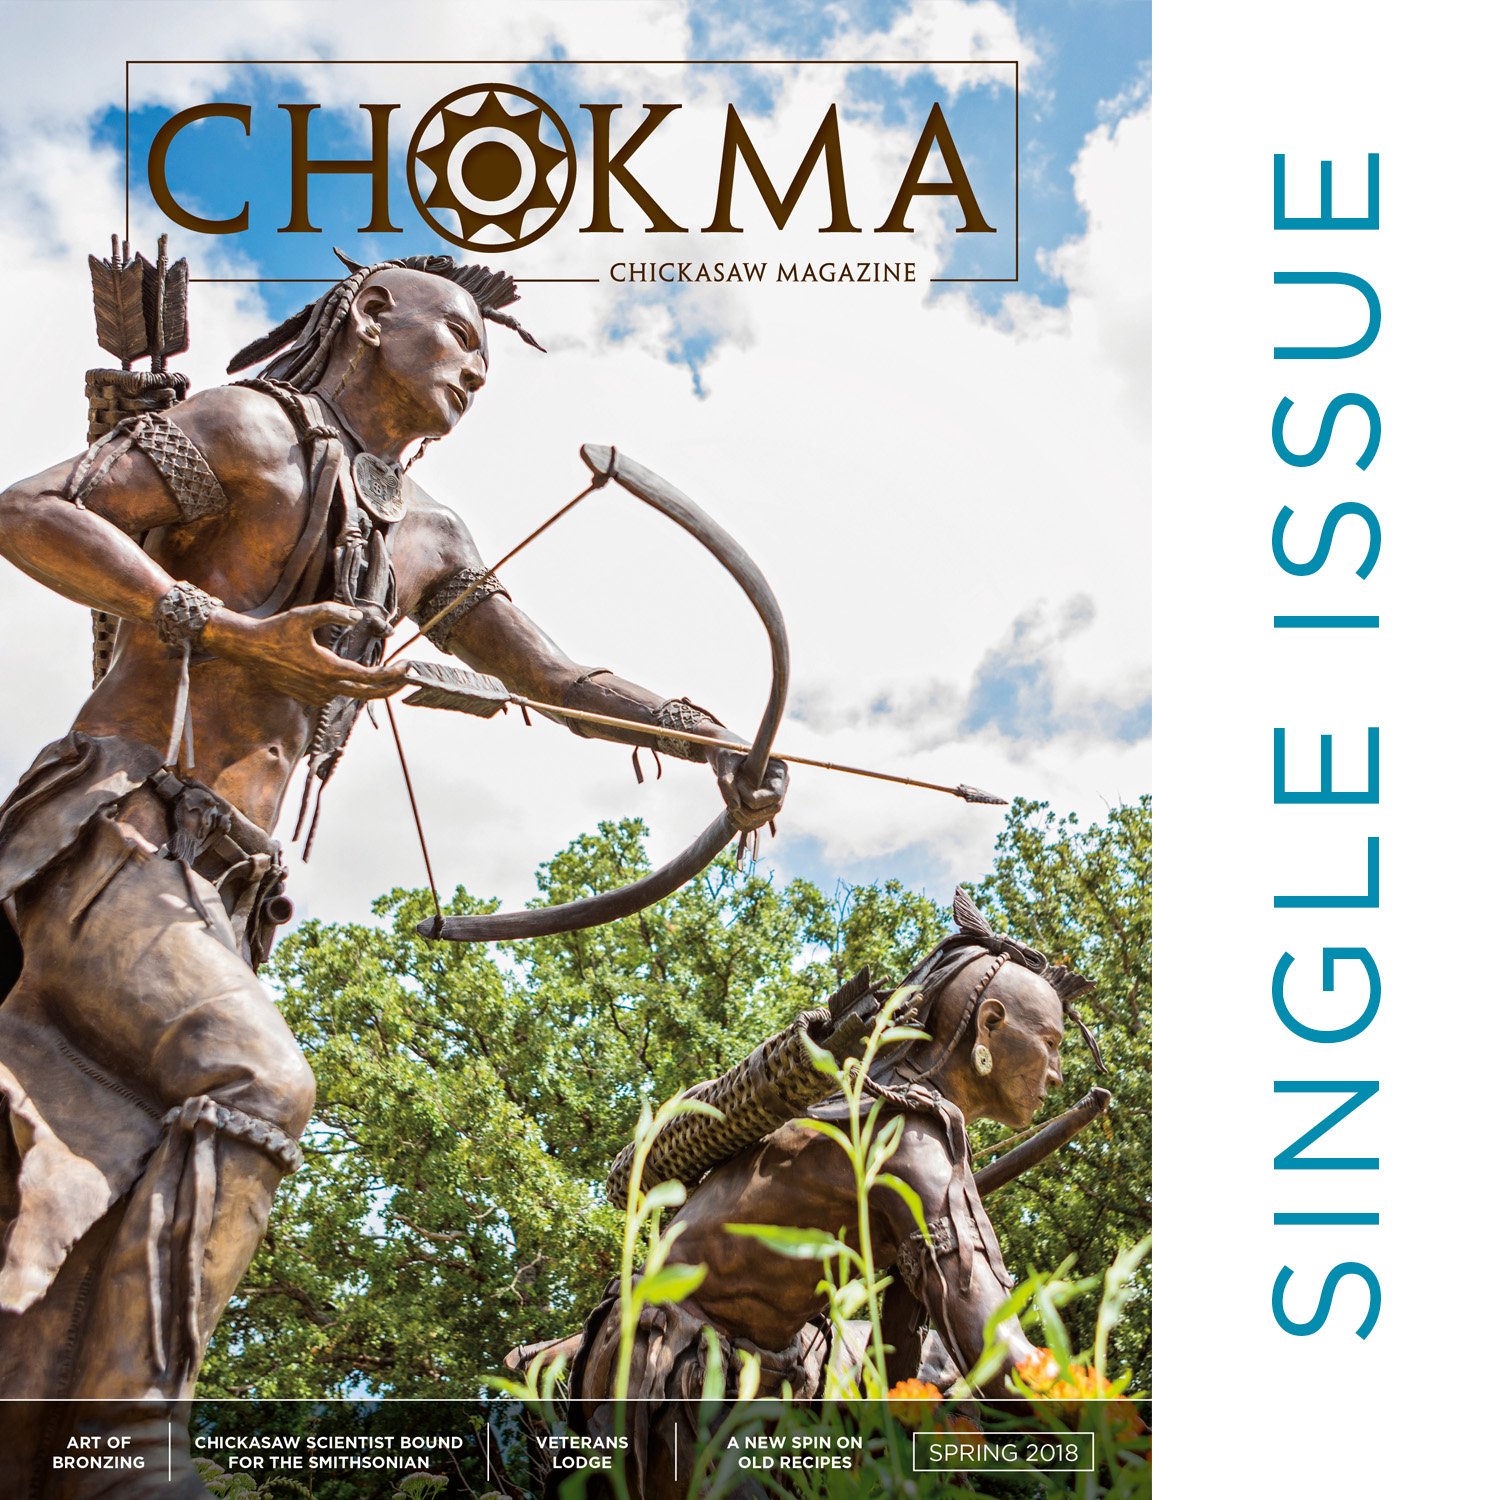 Chokma Magazine - Spring 2018 Issue